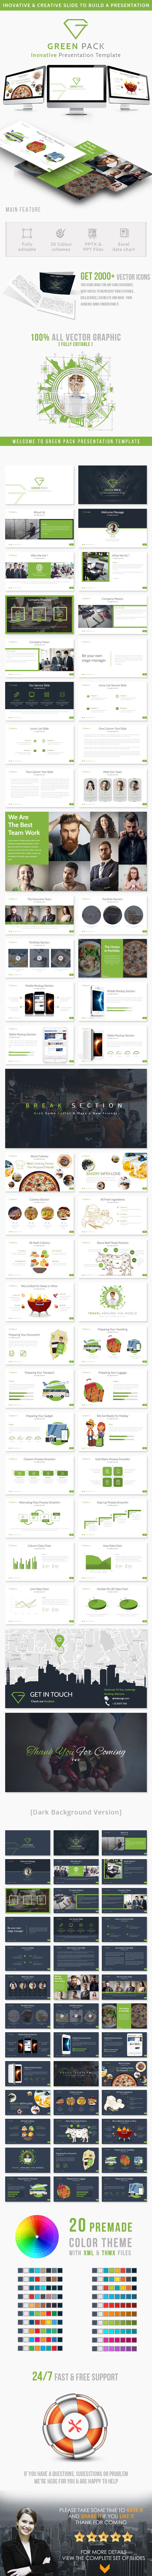 Green Pack Inovative Presentation Template - Abstract PowerPoint Templates